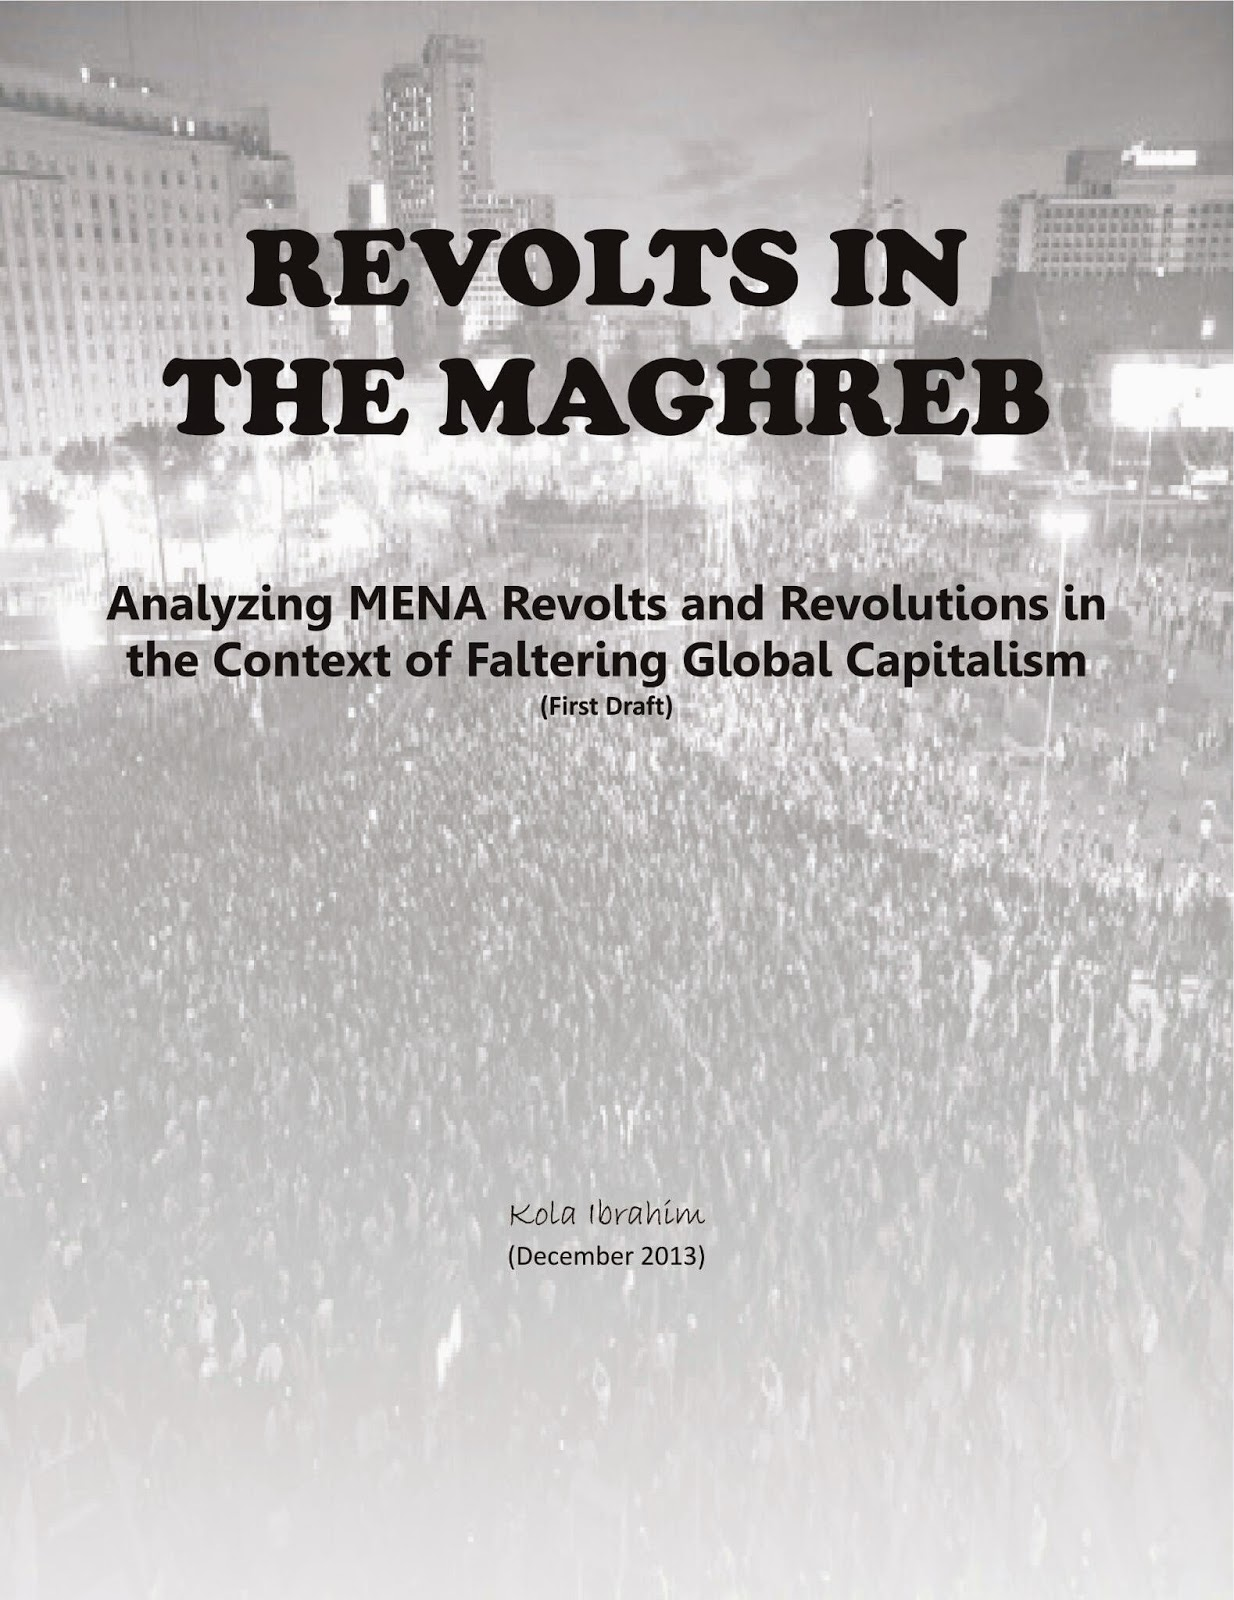 an overview of the insurrection revolution and aggression as diplomatic failures After the greek revolution, the cretan question, which was a sec- ondary part of the eastern question, was indirectly connected with the broader policy of the great powers toward the ottoman empire.